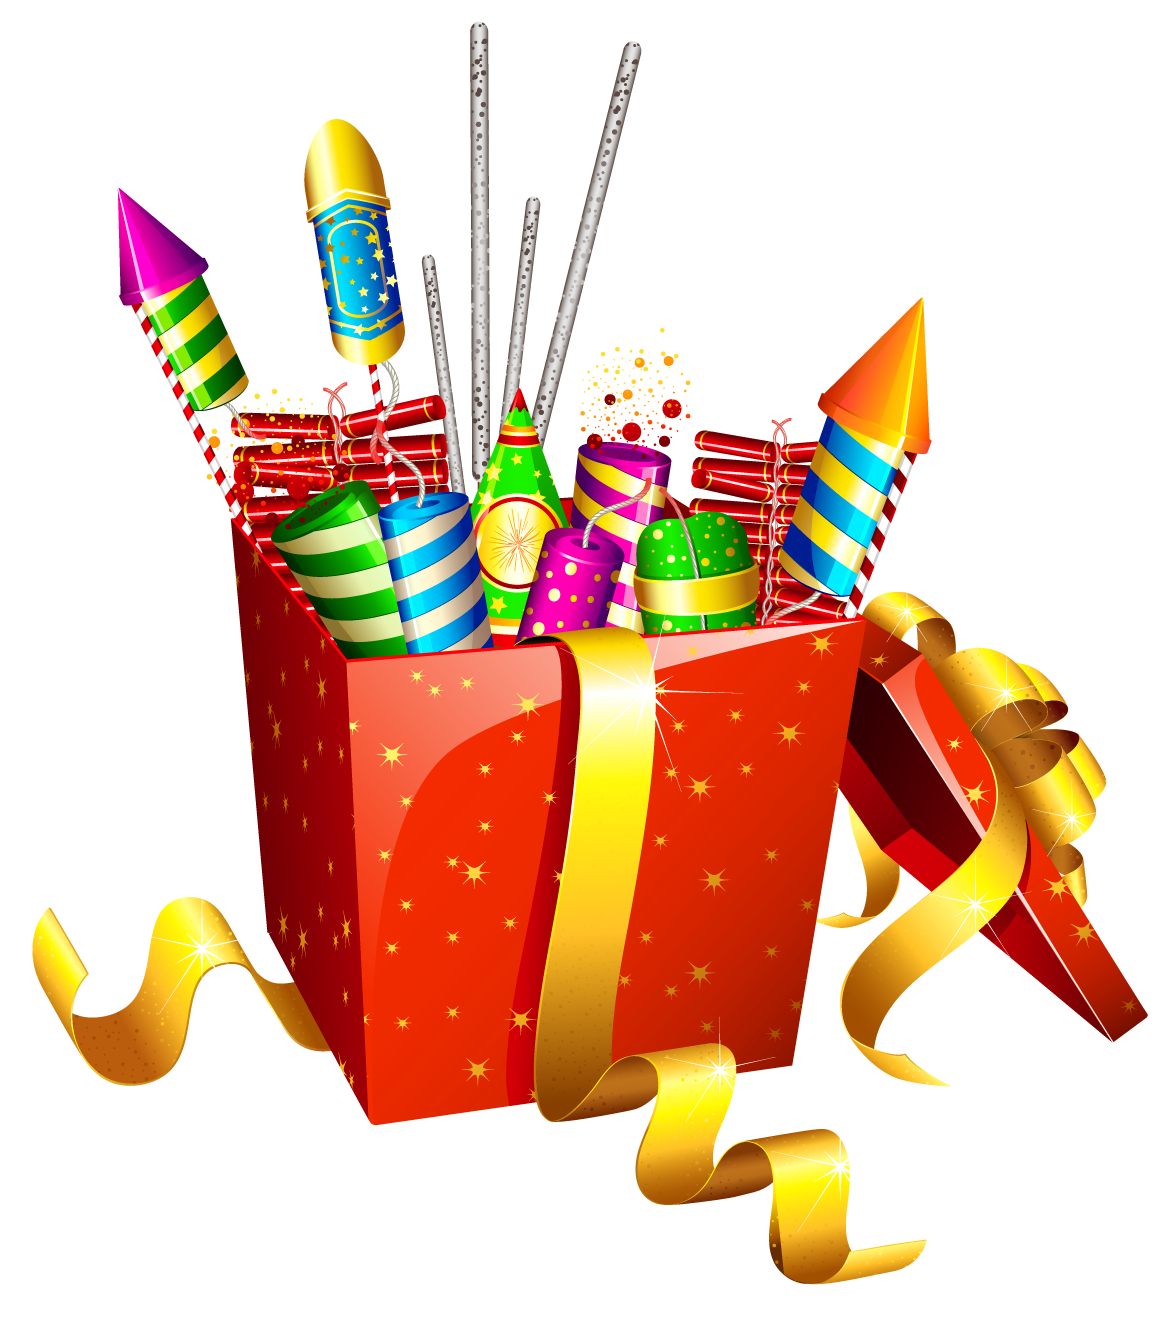 Firework clipart box. Red present with fireworks